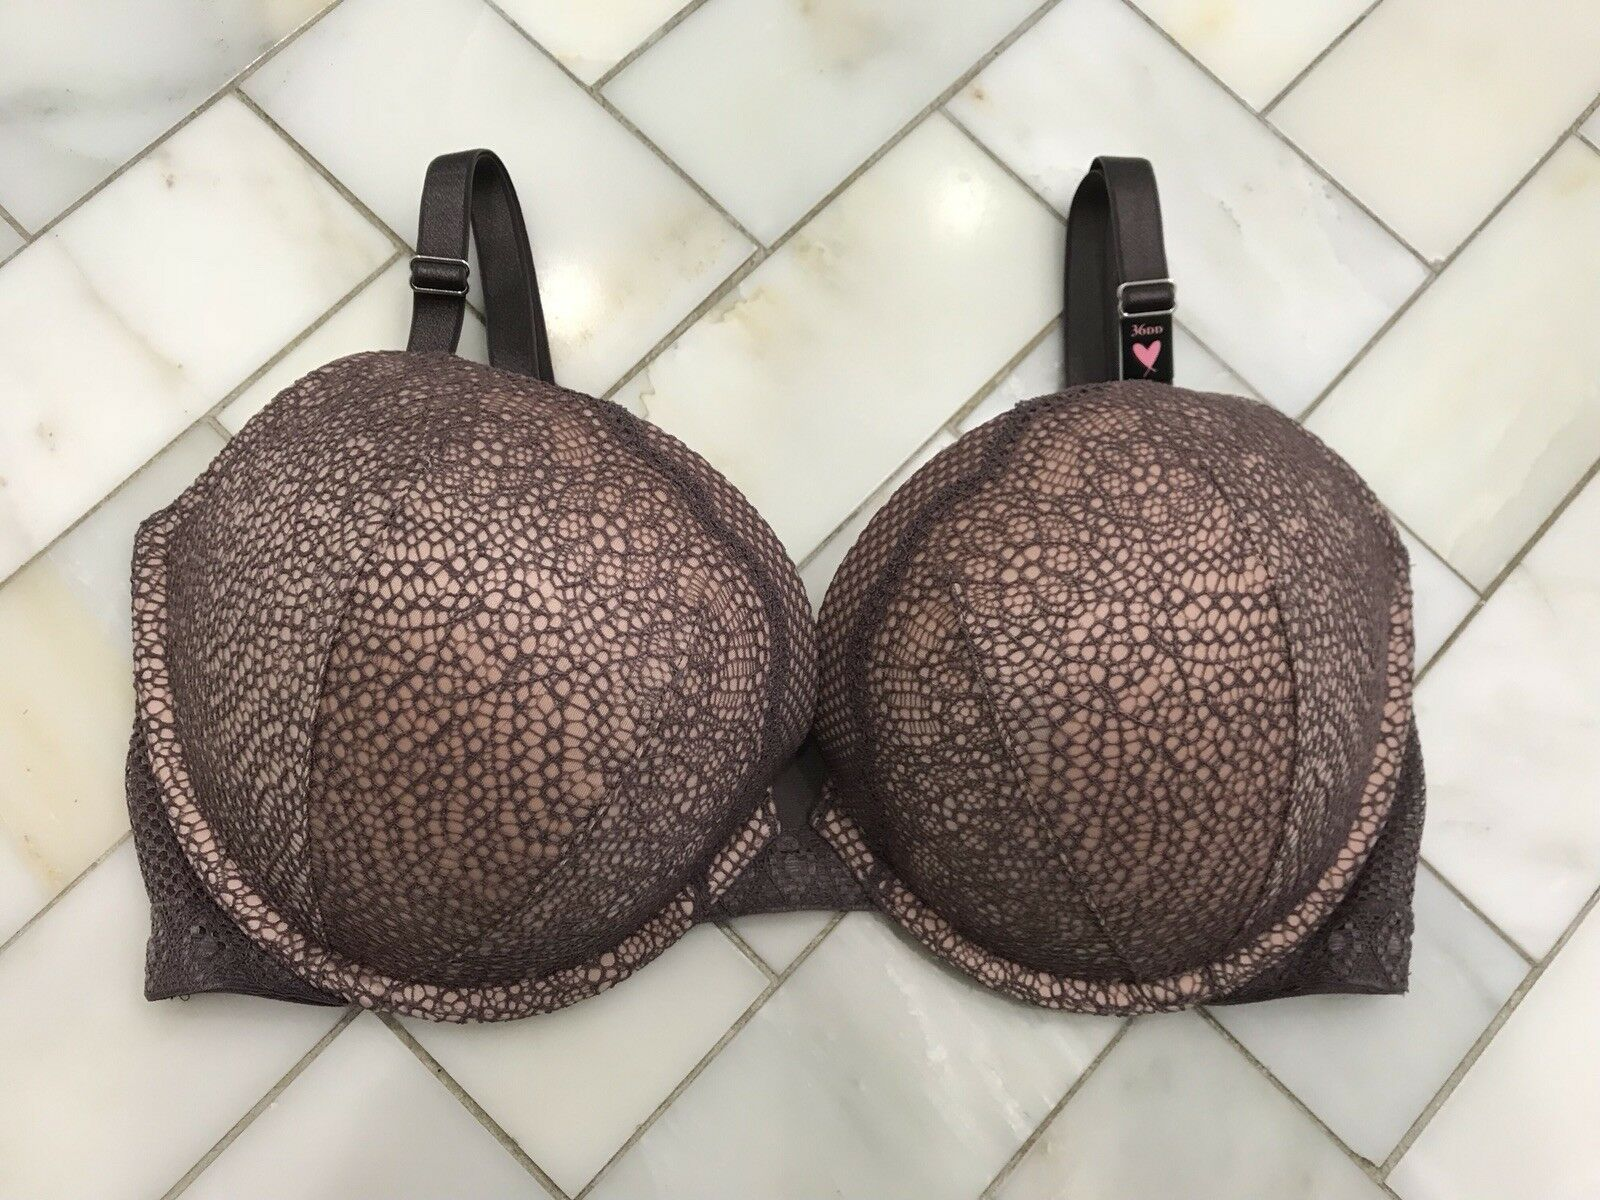 NWT Victoria's Secret Very Sexy 36DD Push Up Bra Cocoa Taupe Grey Pink Lace